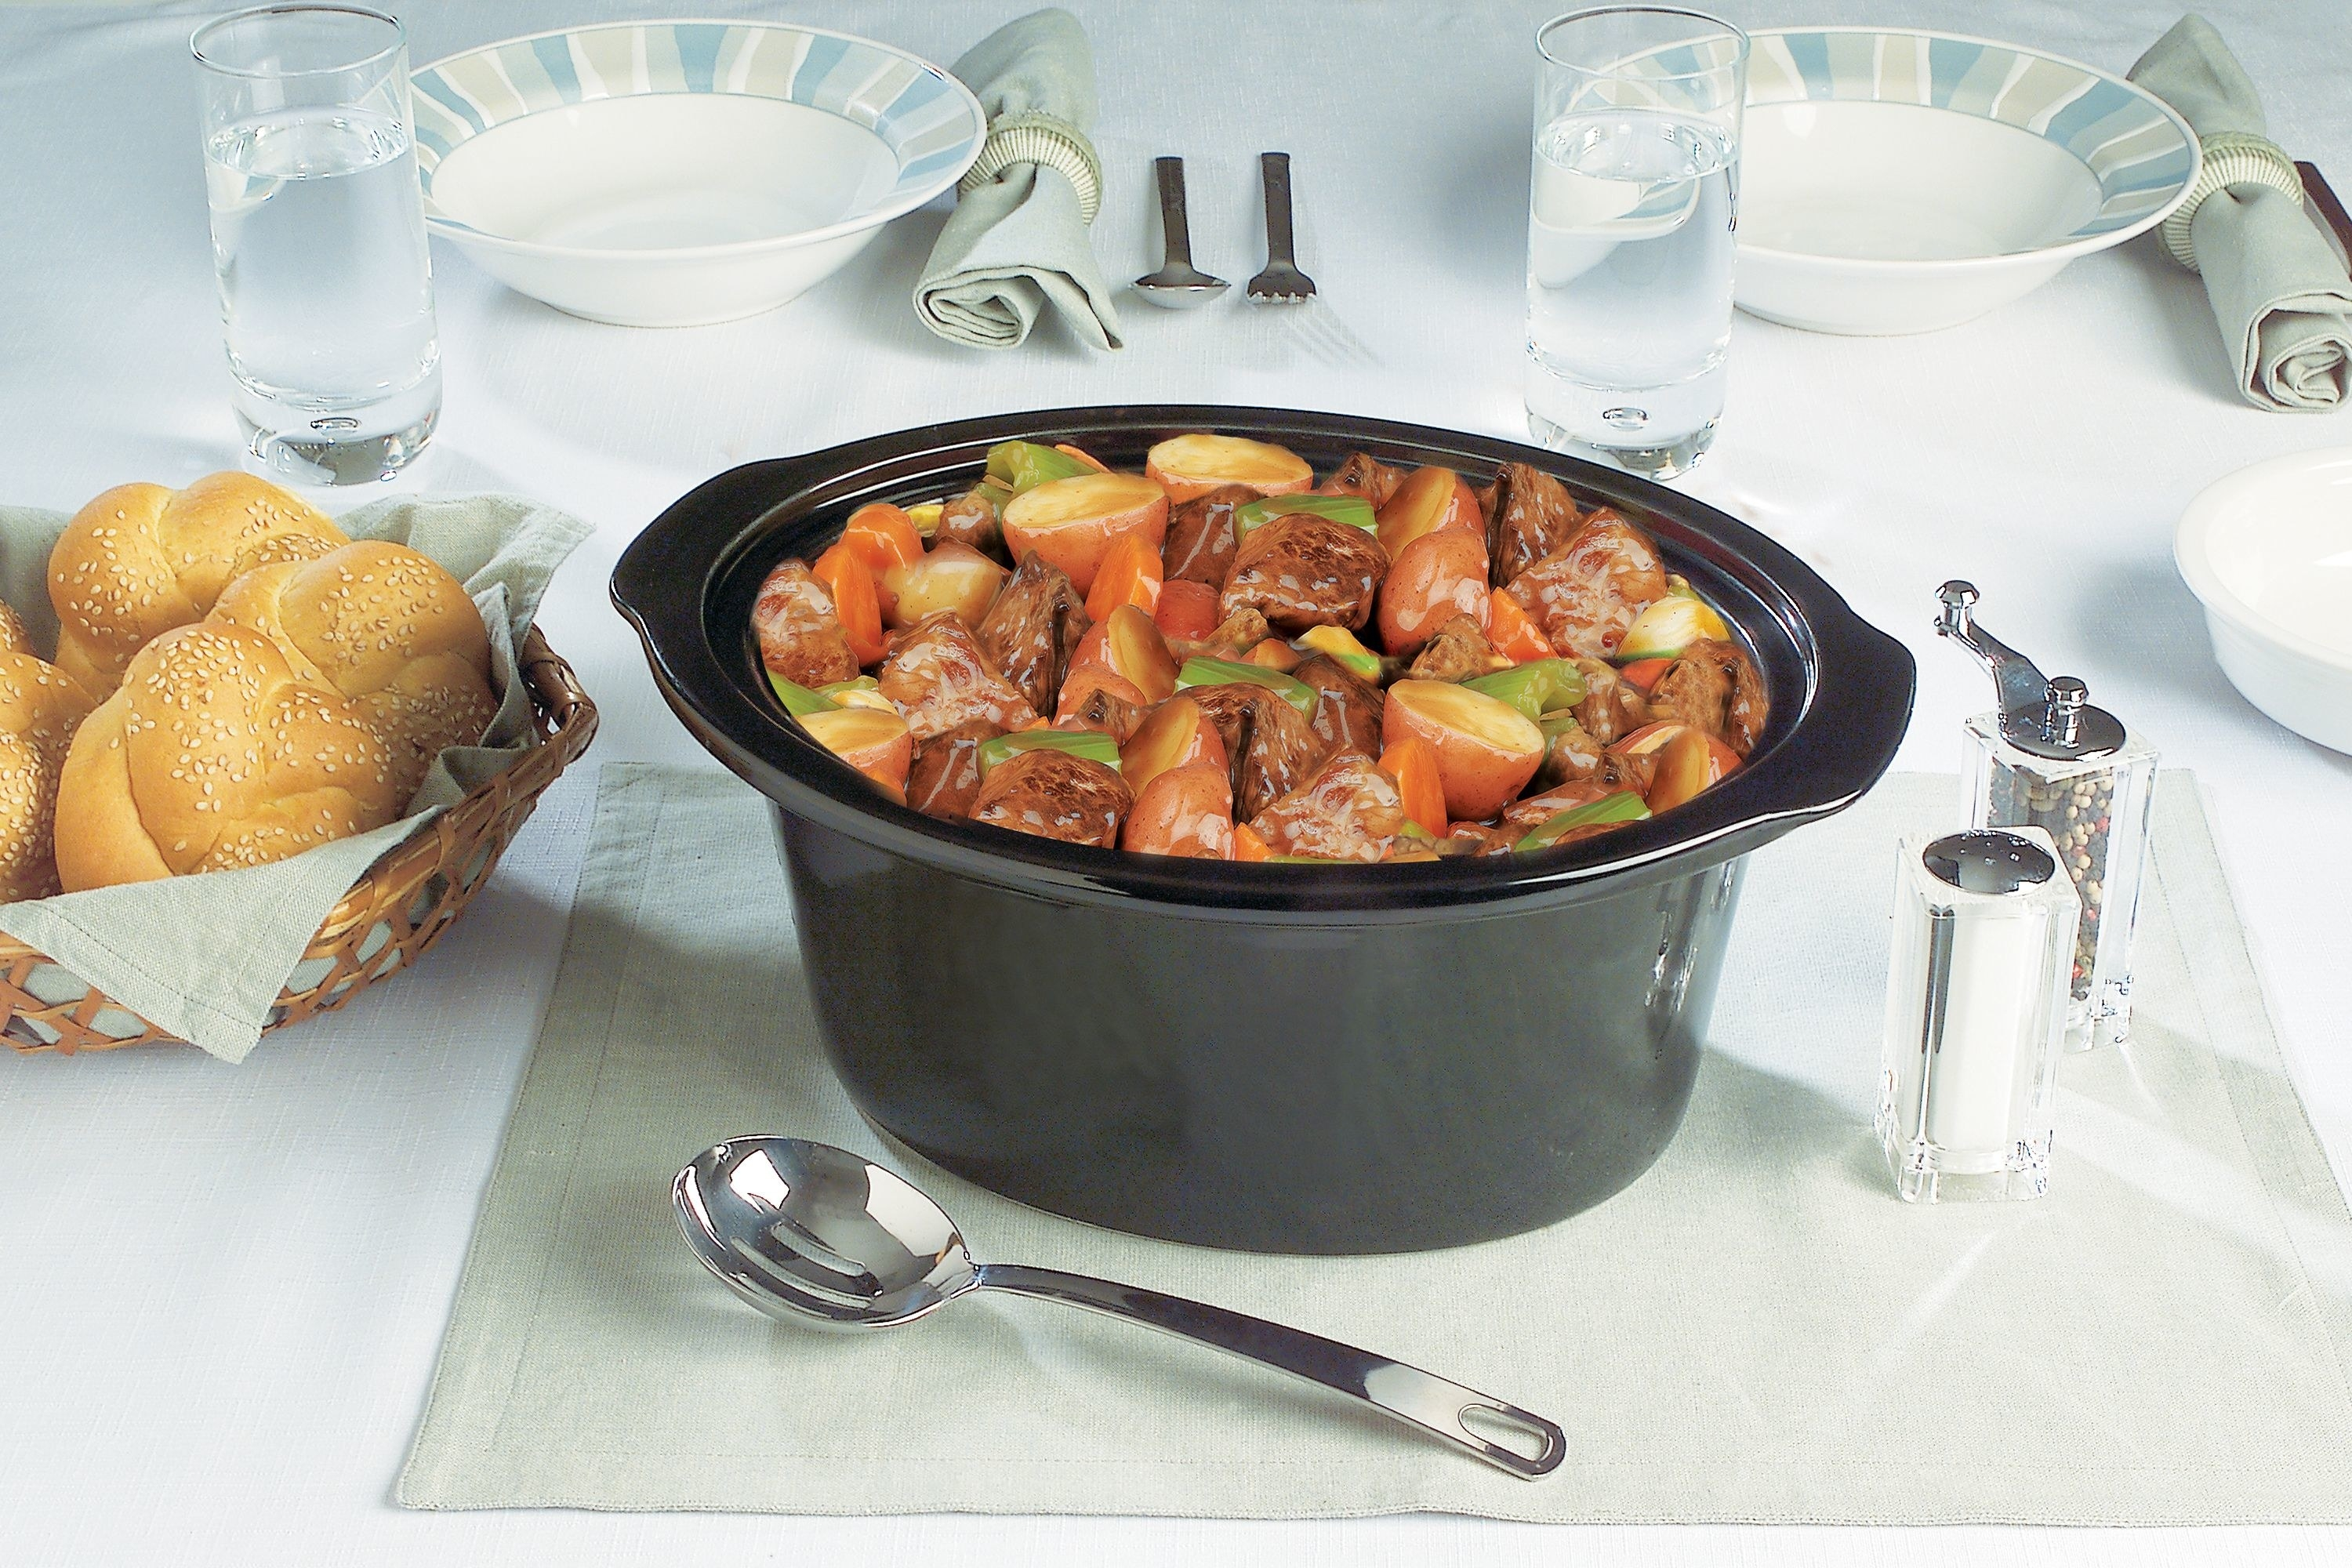 The slow cooker filled with stew on a dinner table